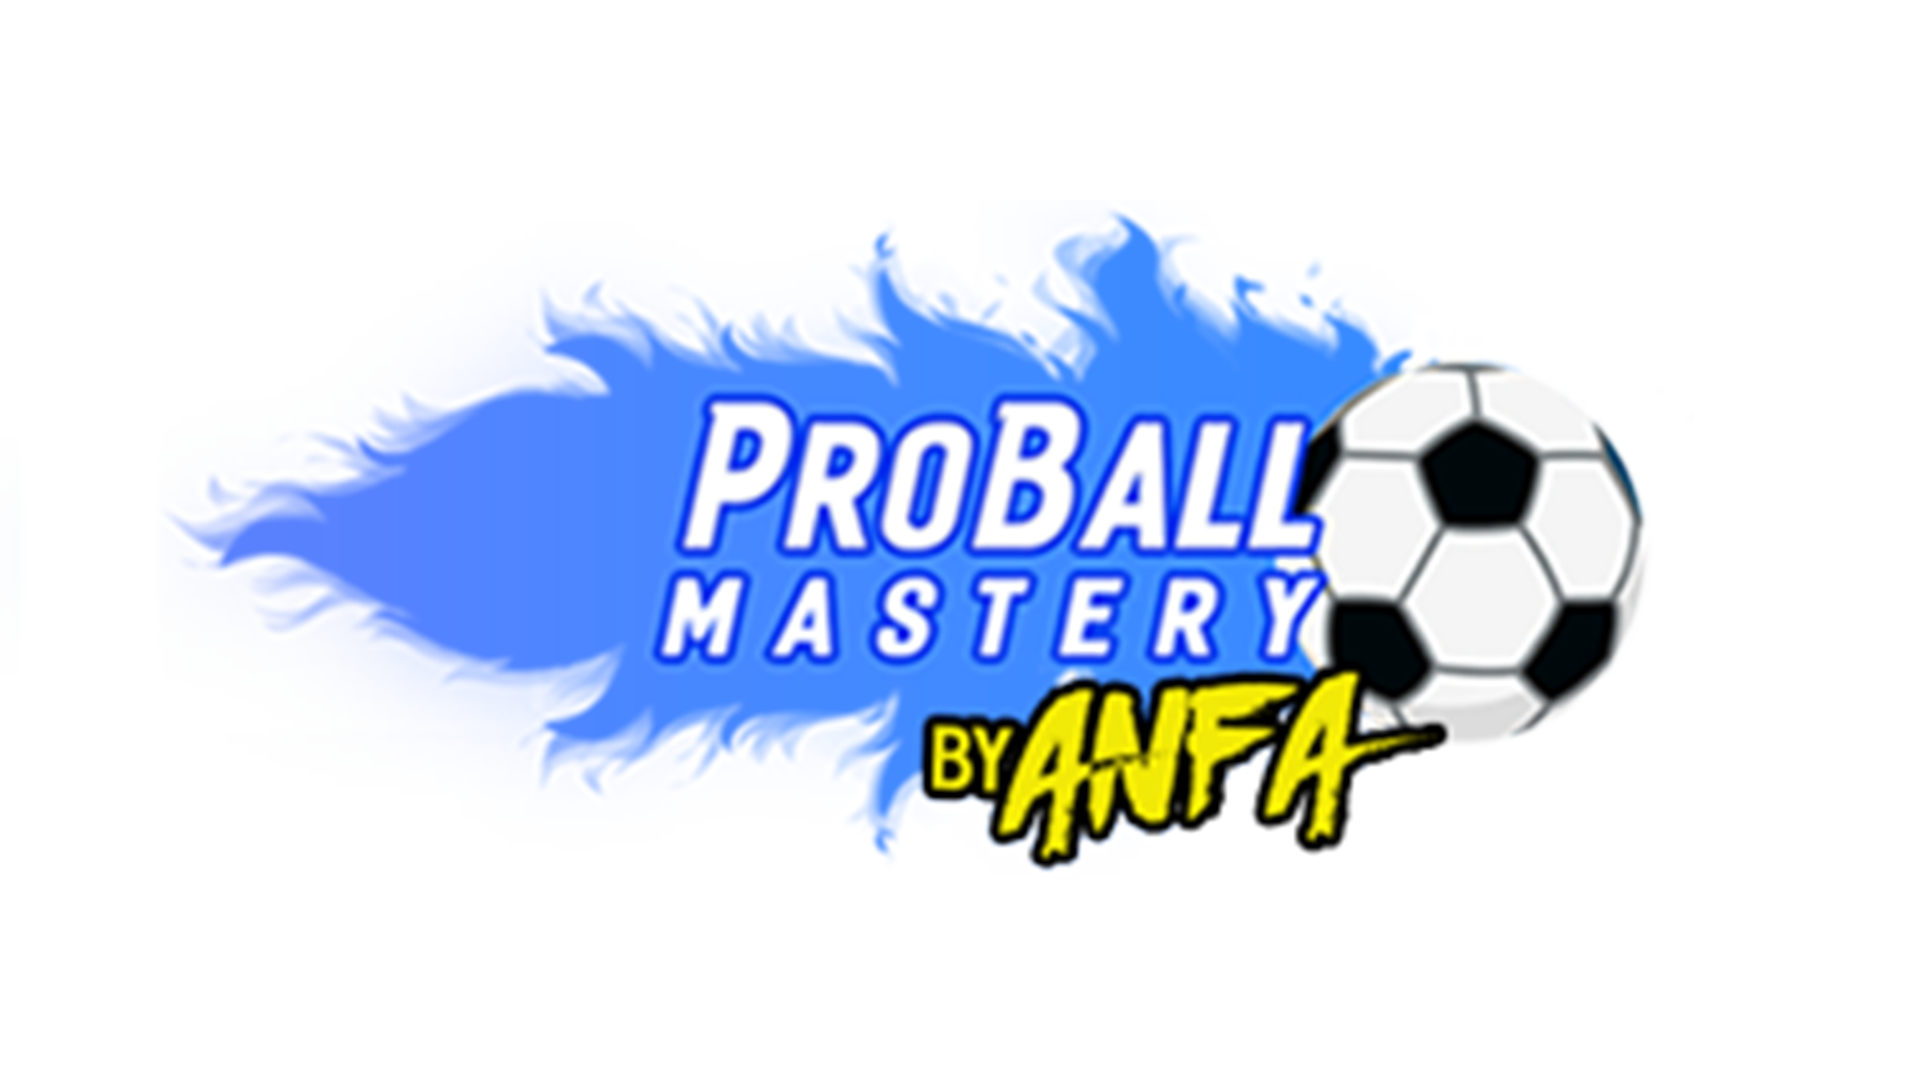 ProBall Mastery